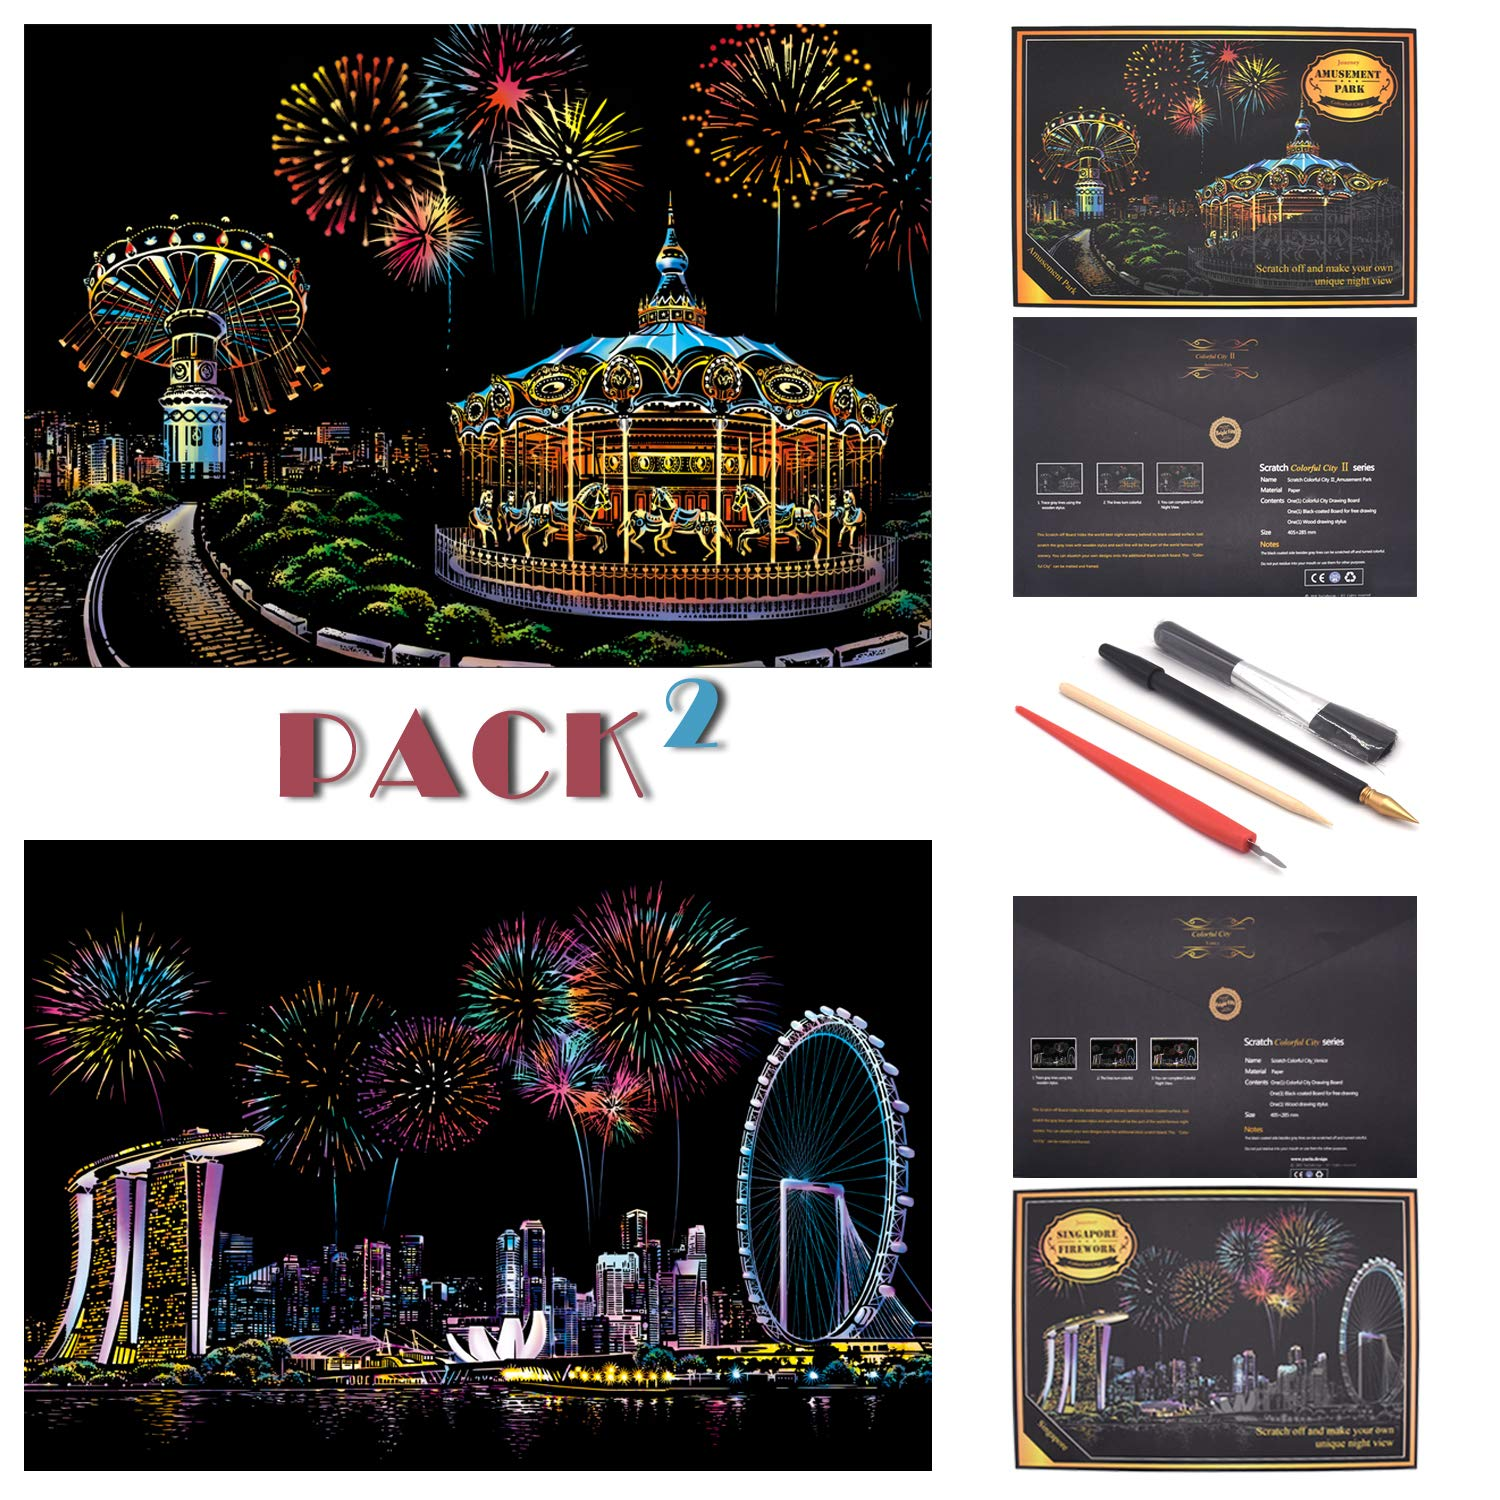 SiYear Scratch Paper Rainbow Painting Sketch City Series Night Scene,Scratch Painting Creative Gift,Scratchboard for Adult and Kids with 4 Tools